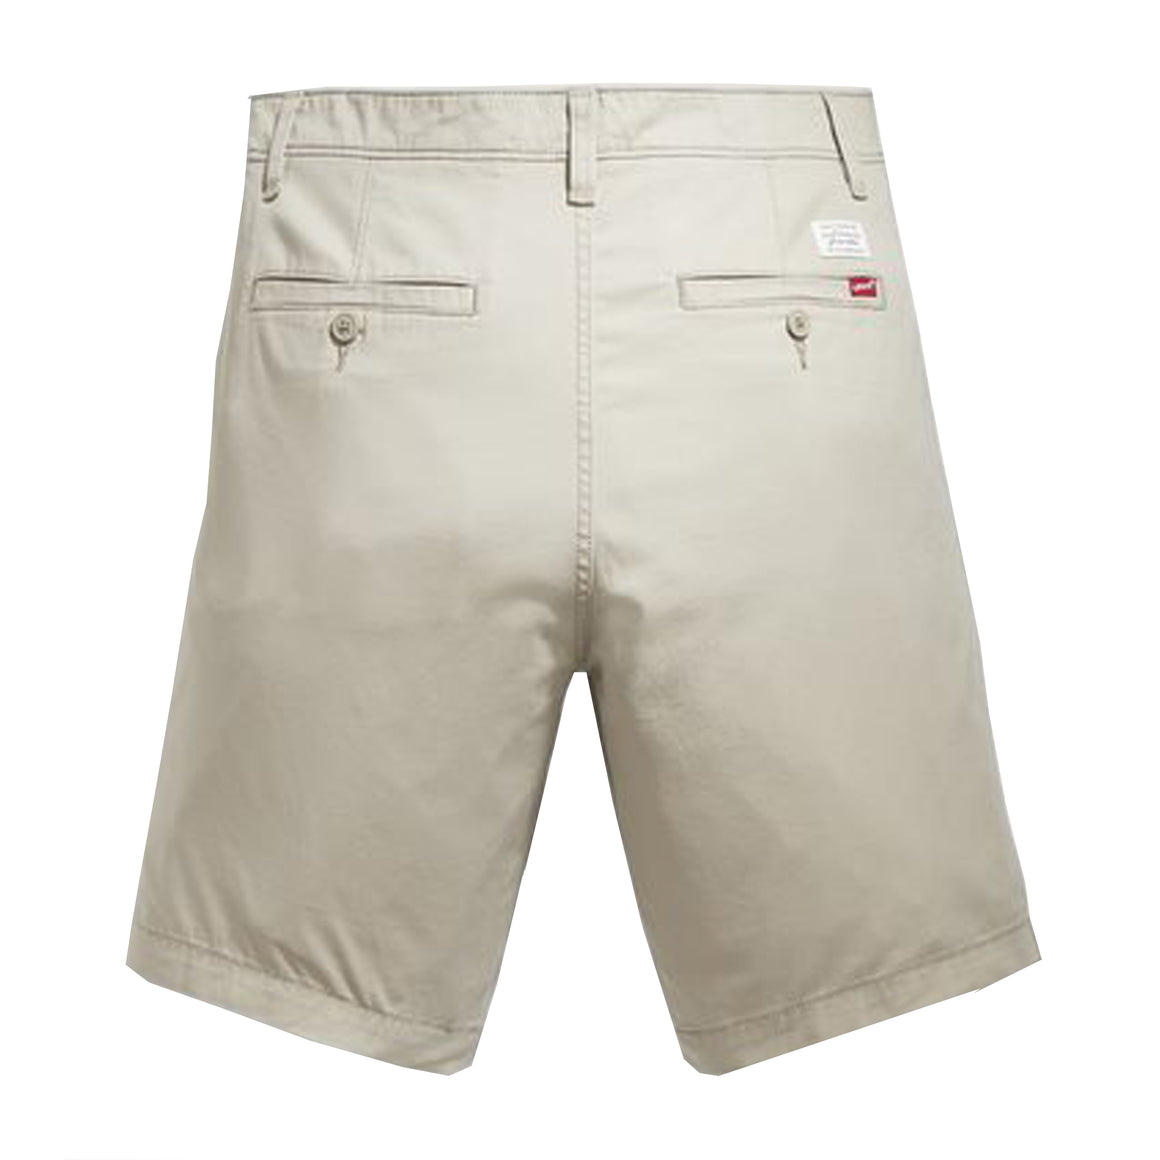 XX Chino Taper Short for Men in Sand